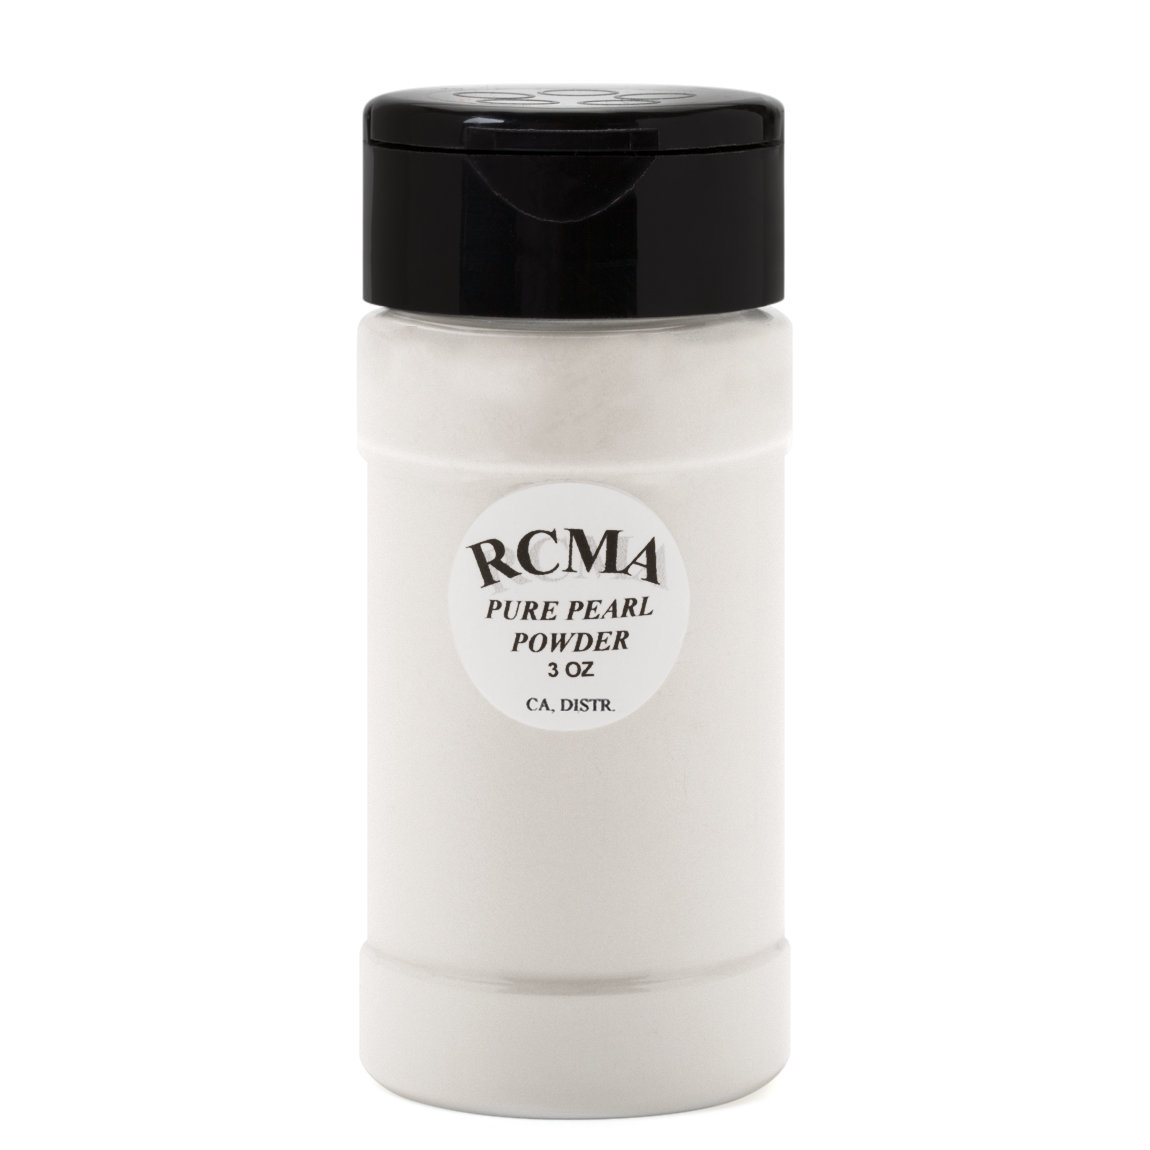 RCMA Makeup Pure Pearl Powder product smear.